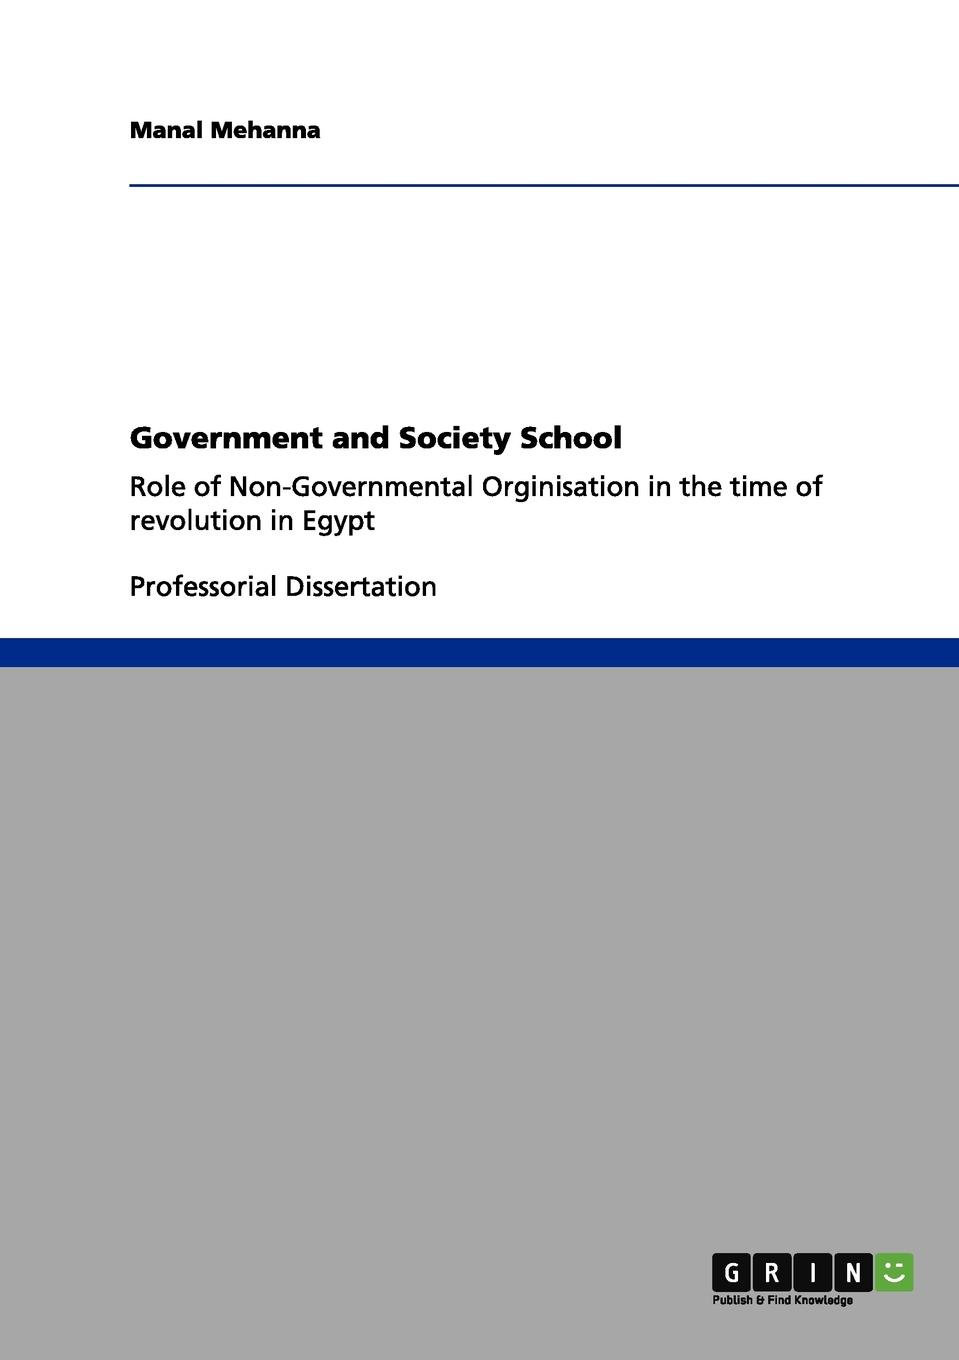 Manal Mehanna Government and Society School hugo chavez and the bolivarian revolution